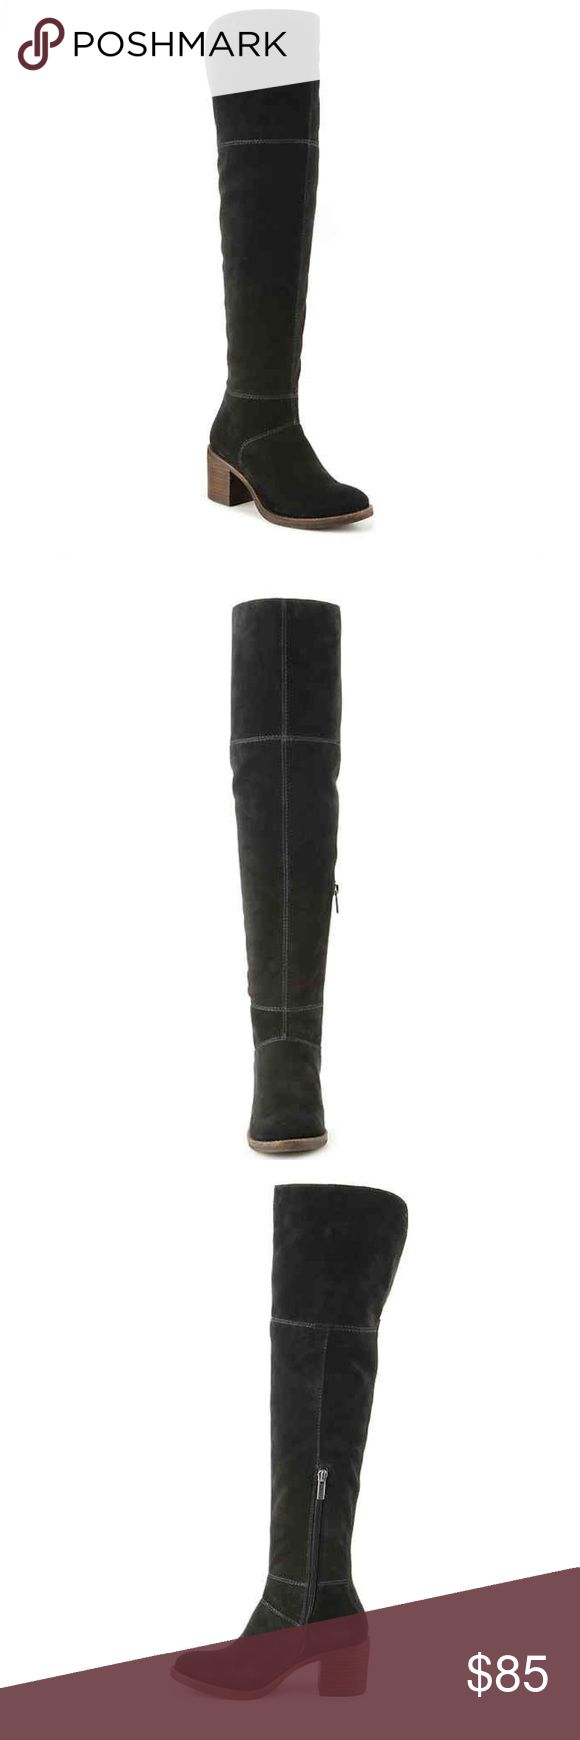 SALE! Lucky Brand Ramsden Over the Knee Boot SALE! Lucky Brand Ramsden Over the Knee Boot  ⭐️ Size 8.5 ⭐️ WORN ONCE for only a few hours! Basically new! ⭐️ Looks great with dresses or jeans! ⭐️ 20% off bundles of 3 or more items! ⭐️ All reasonable offers considered Lucky Brand Shoes Over the Knee Boots